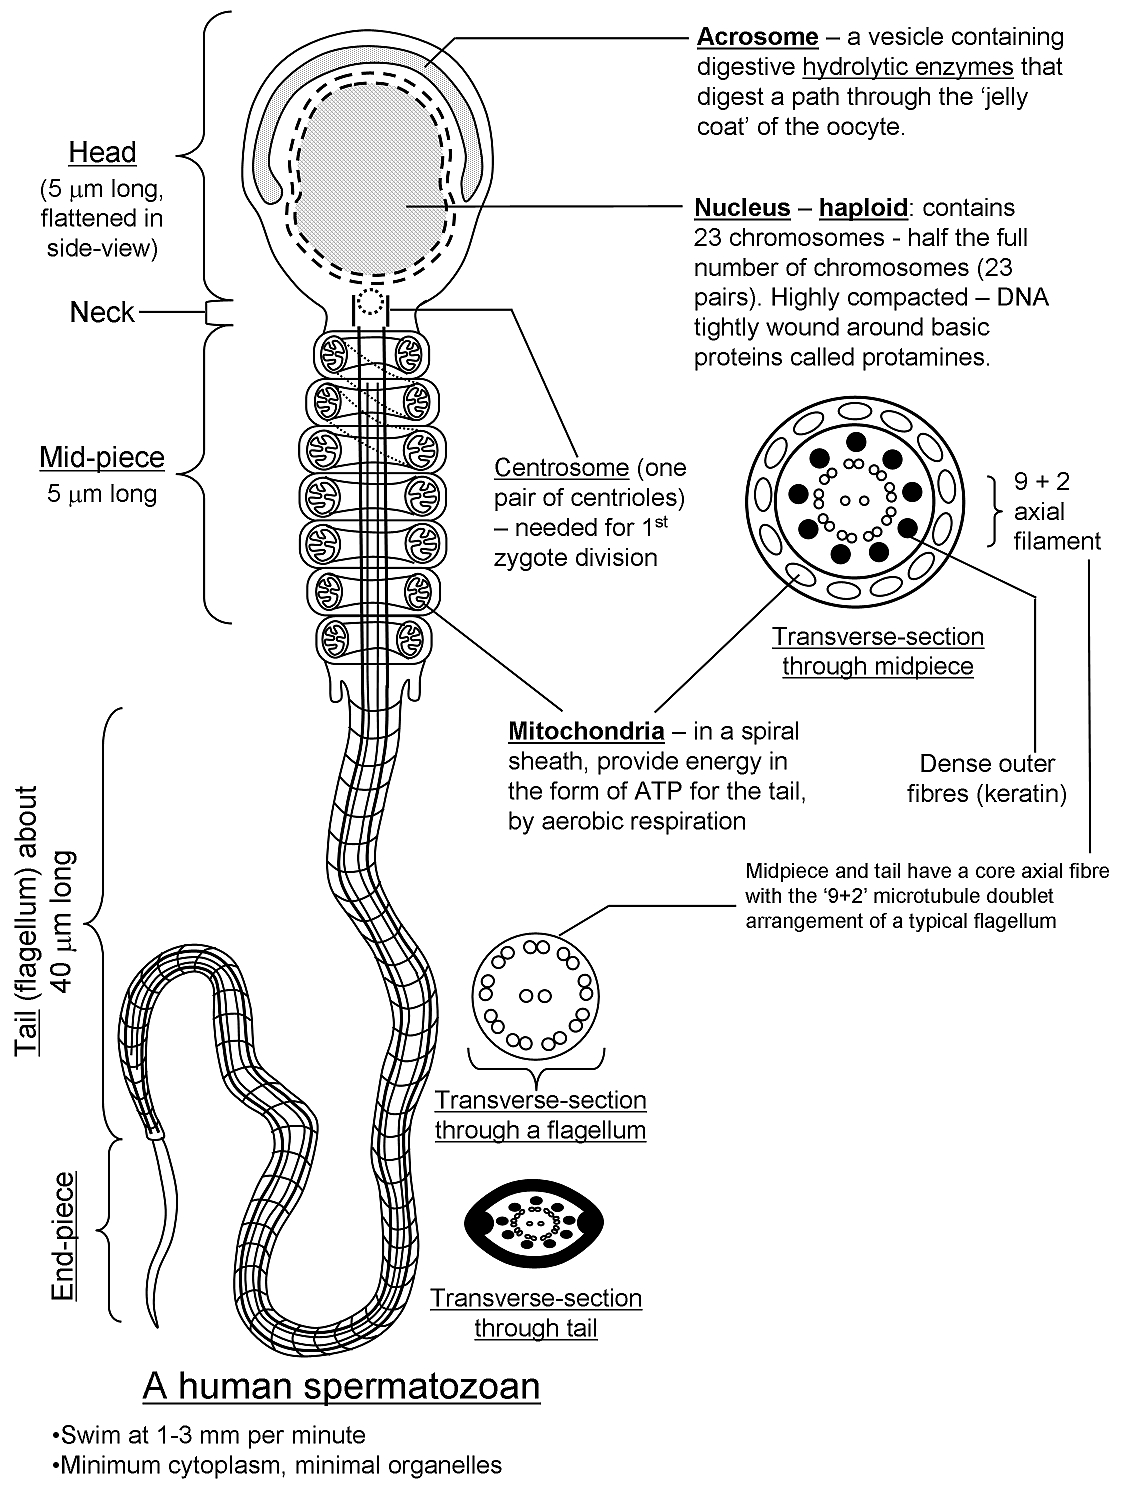 Human Sperm Cells-What are the organelles? Yahoo Answers